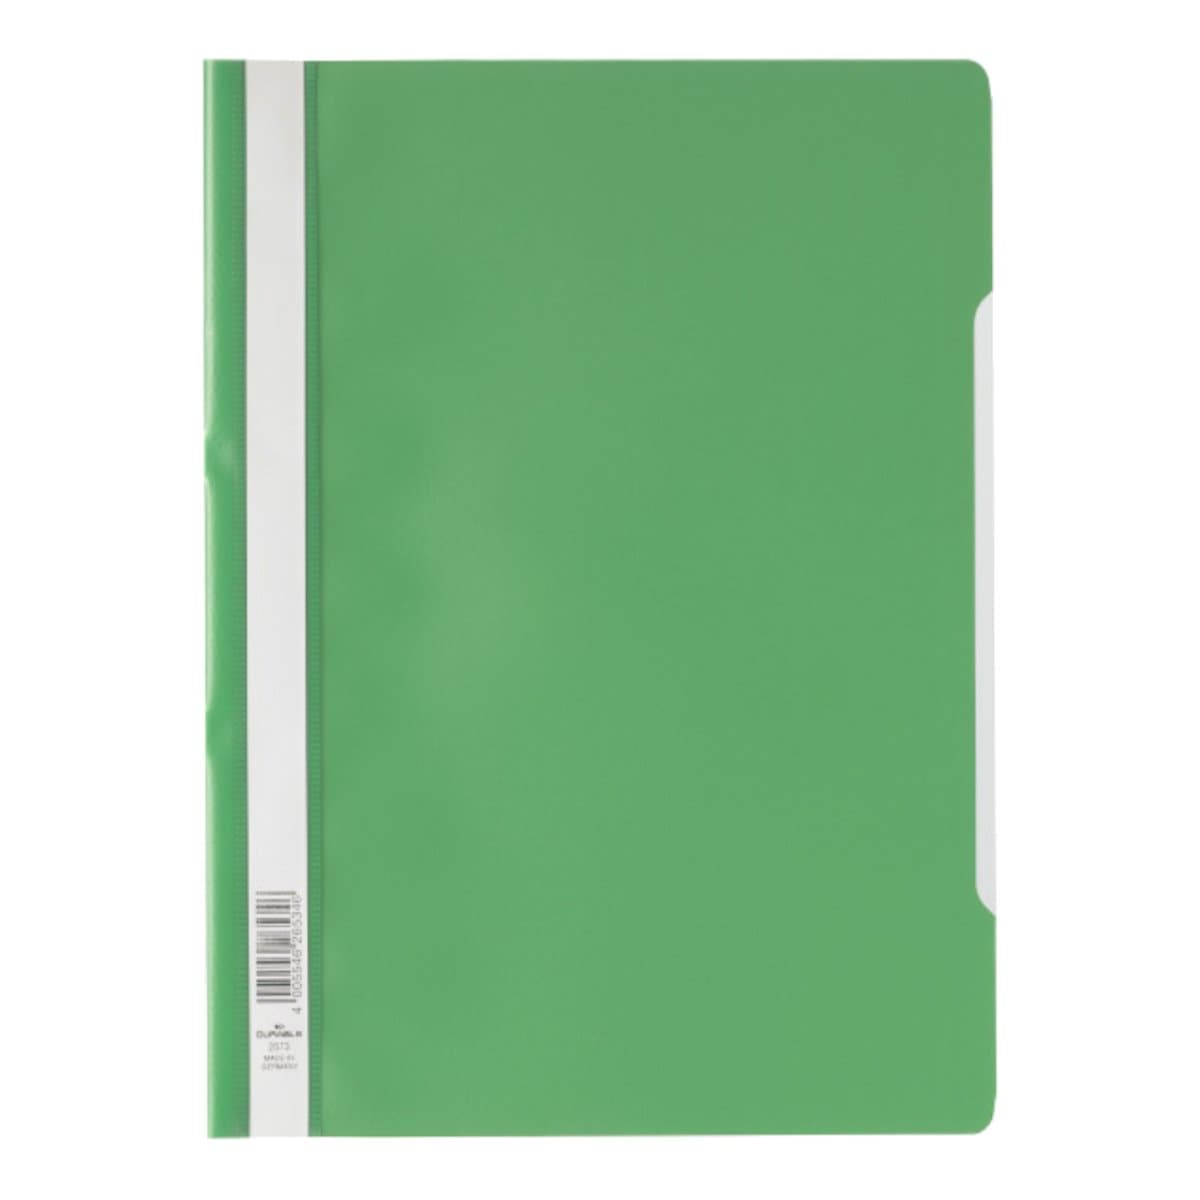 Durable Clear View Folder - Economy A4, Green